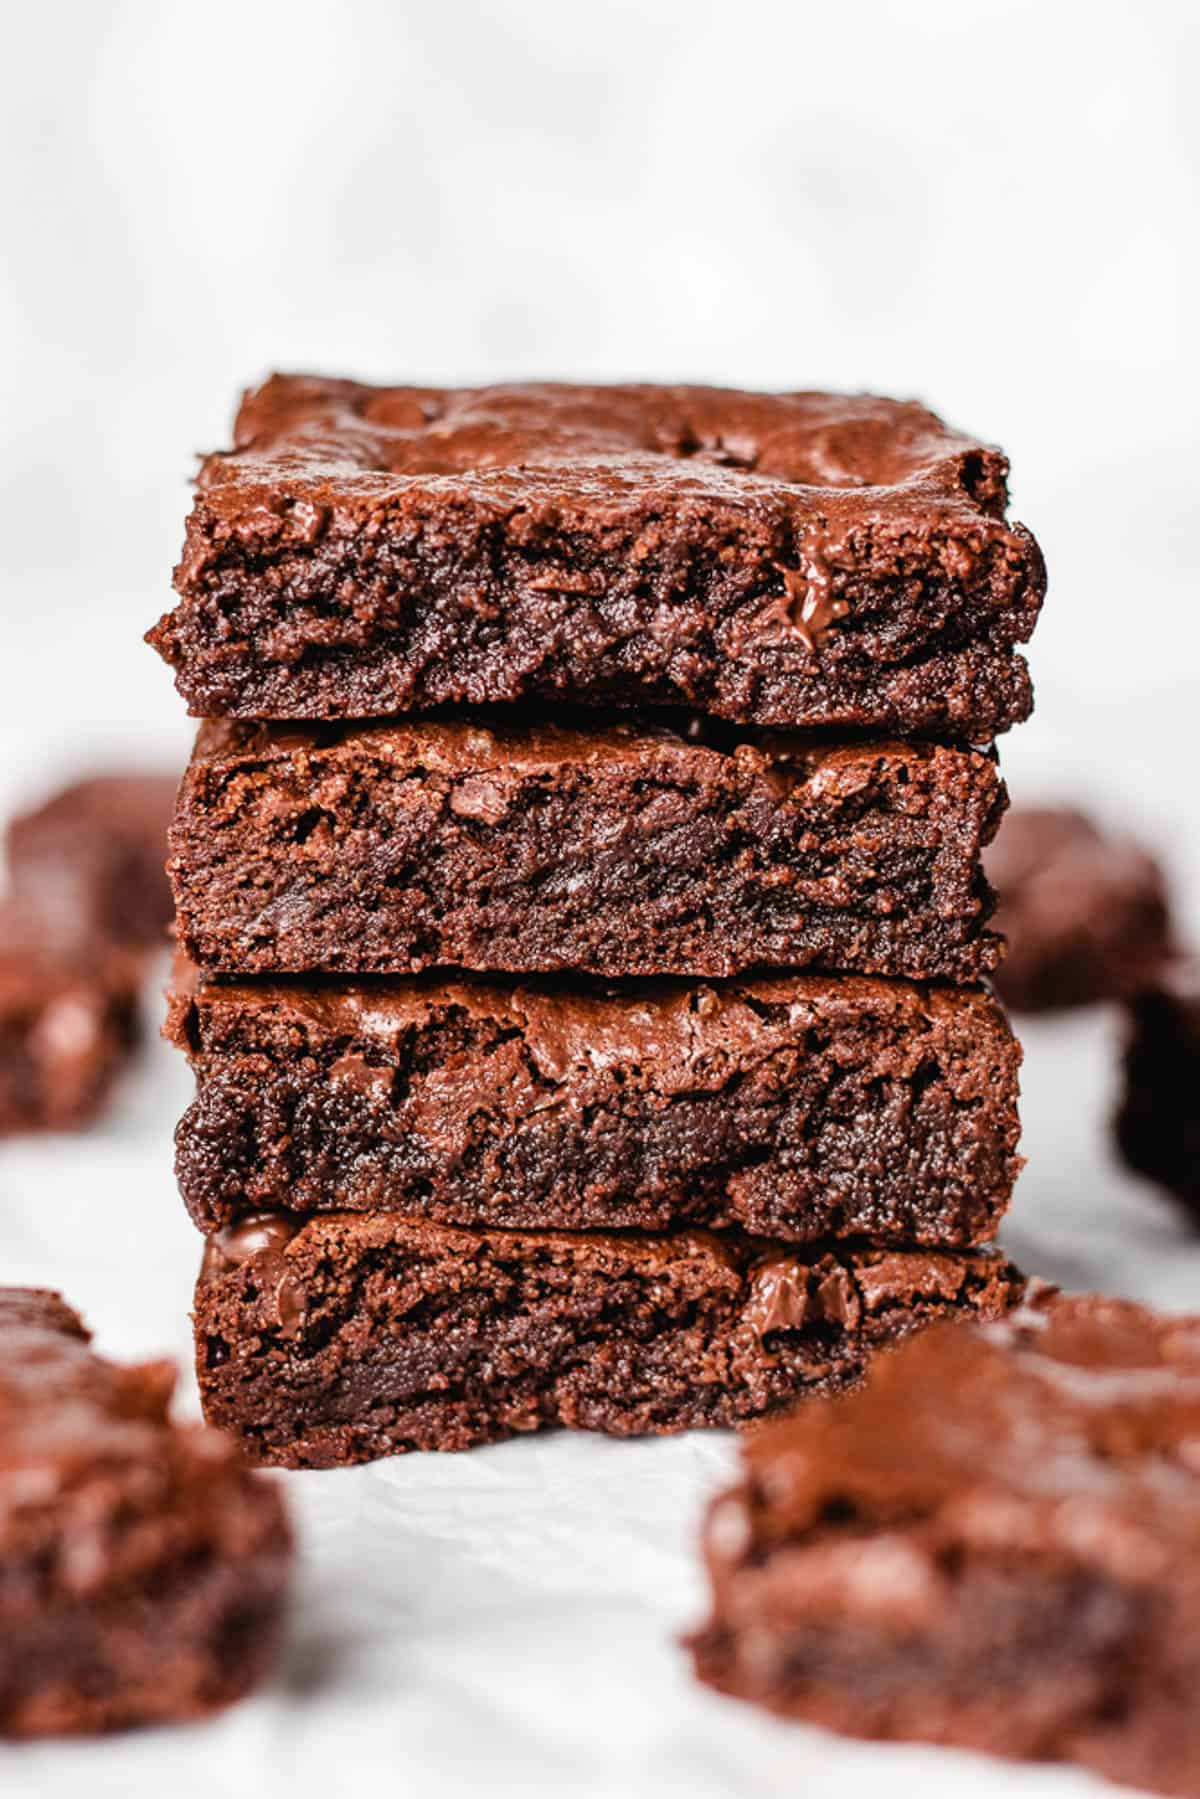 Squares of brownie on top of each other.